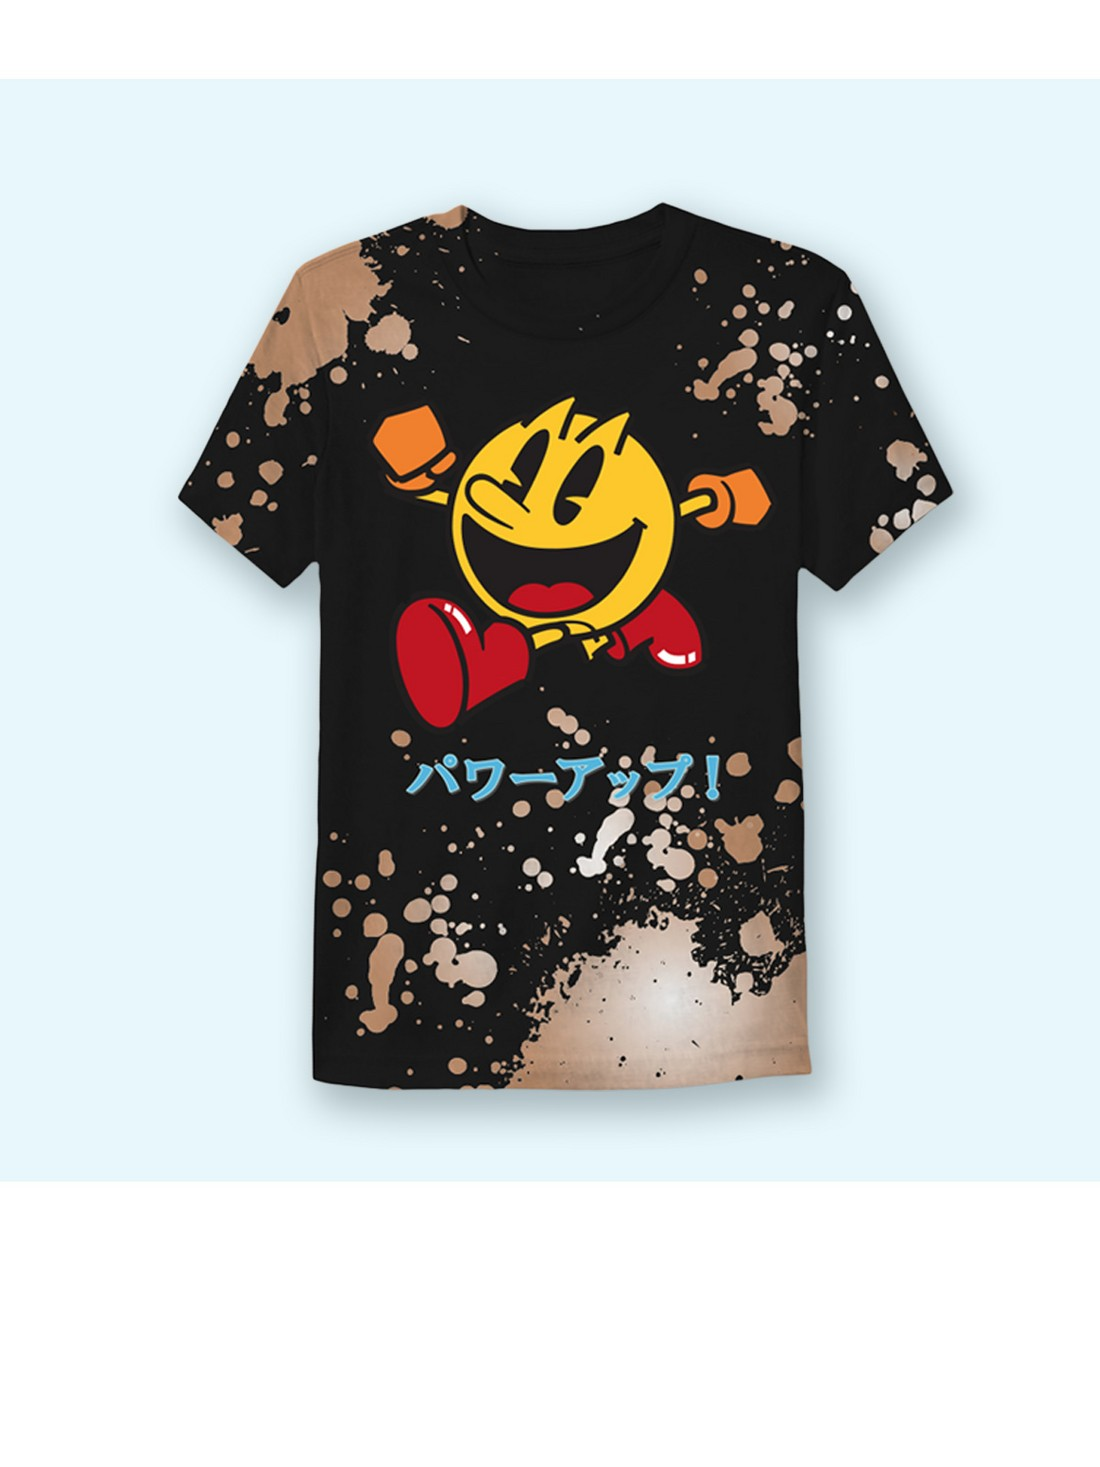 See great designs on styles for Men, Women, Kids, Babies, and even Dog T-Shirts!? Free Returns?% Money Back Guarantee?Fast Shipping Find high quality printed Graphic T-Shirts at CafePress.